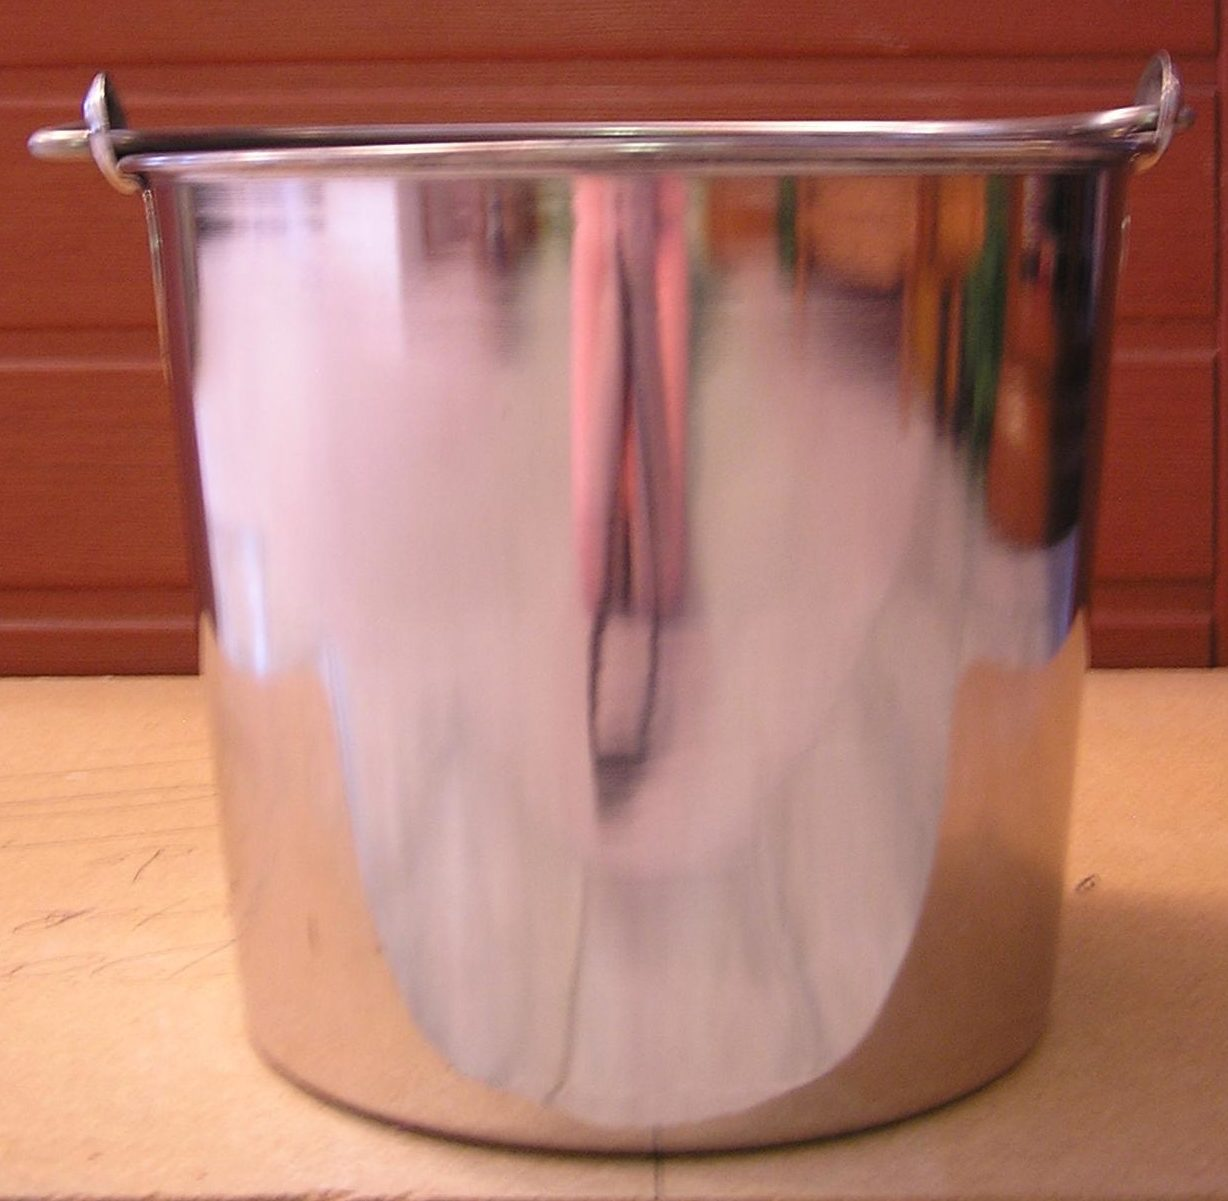 8 Qt. Stainless Steel Pail with Seamless Pail Construction